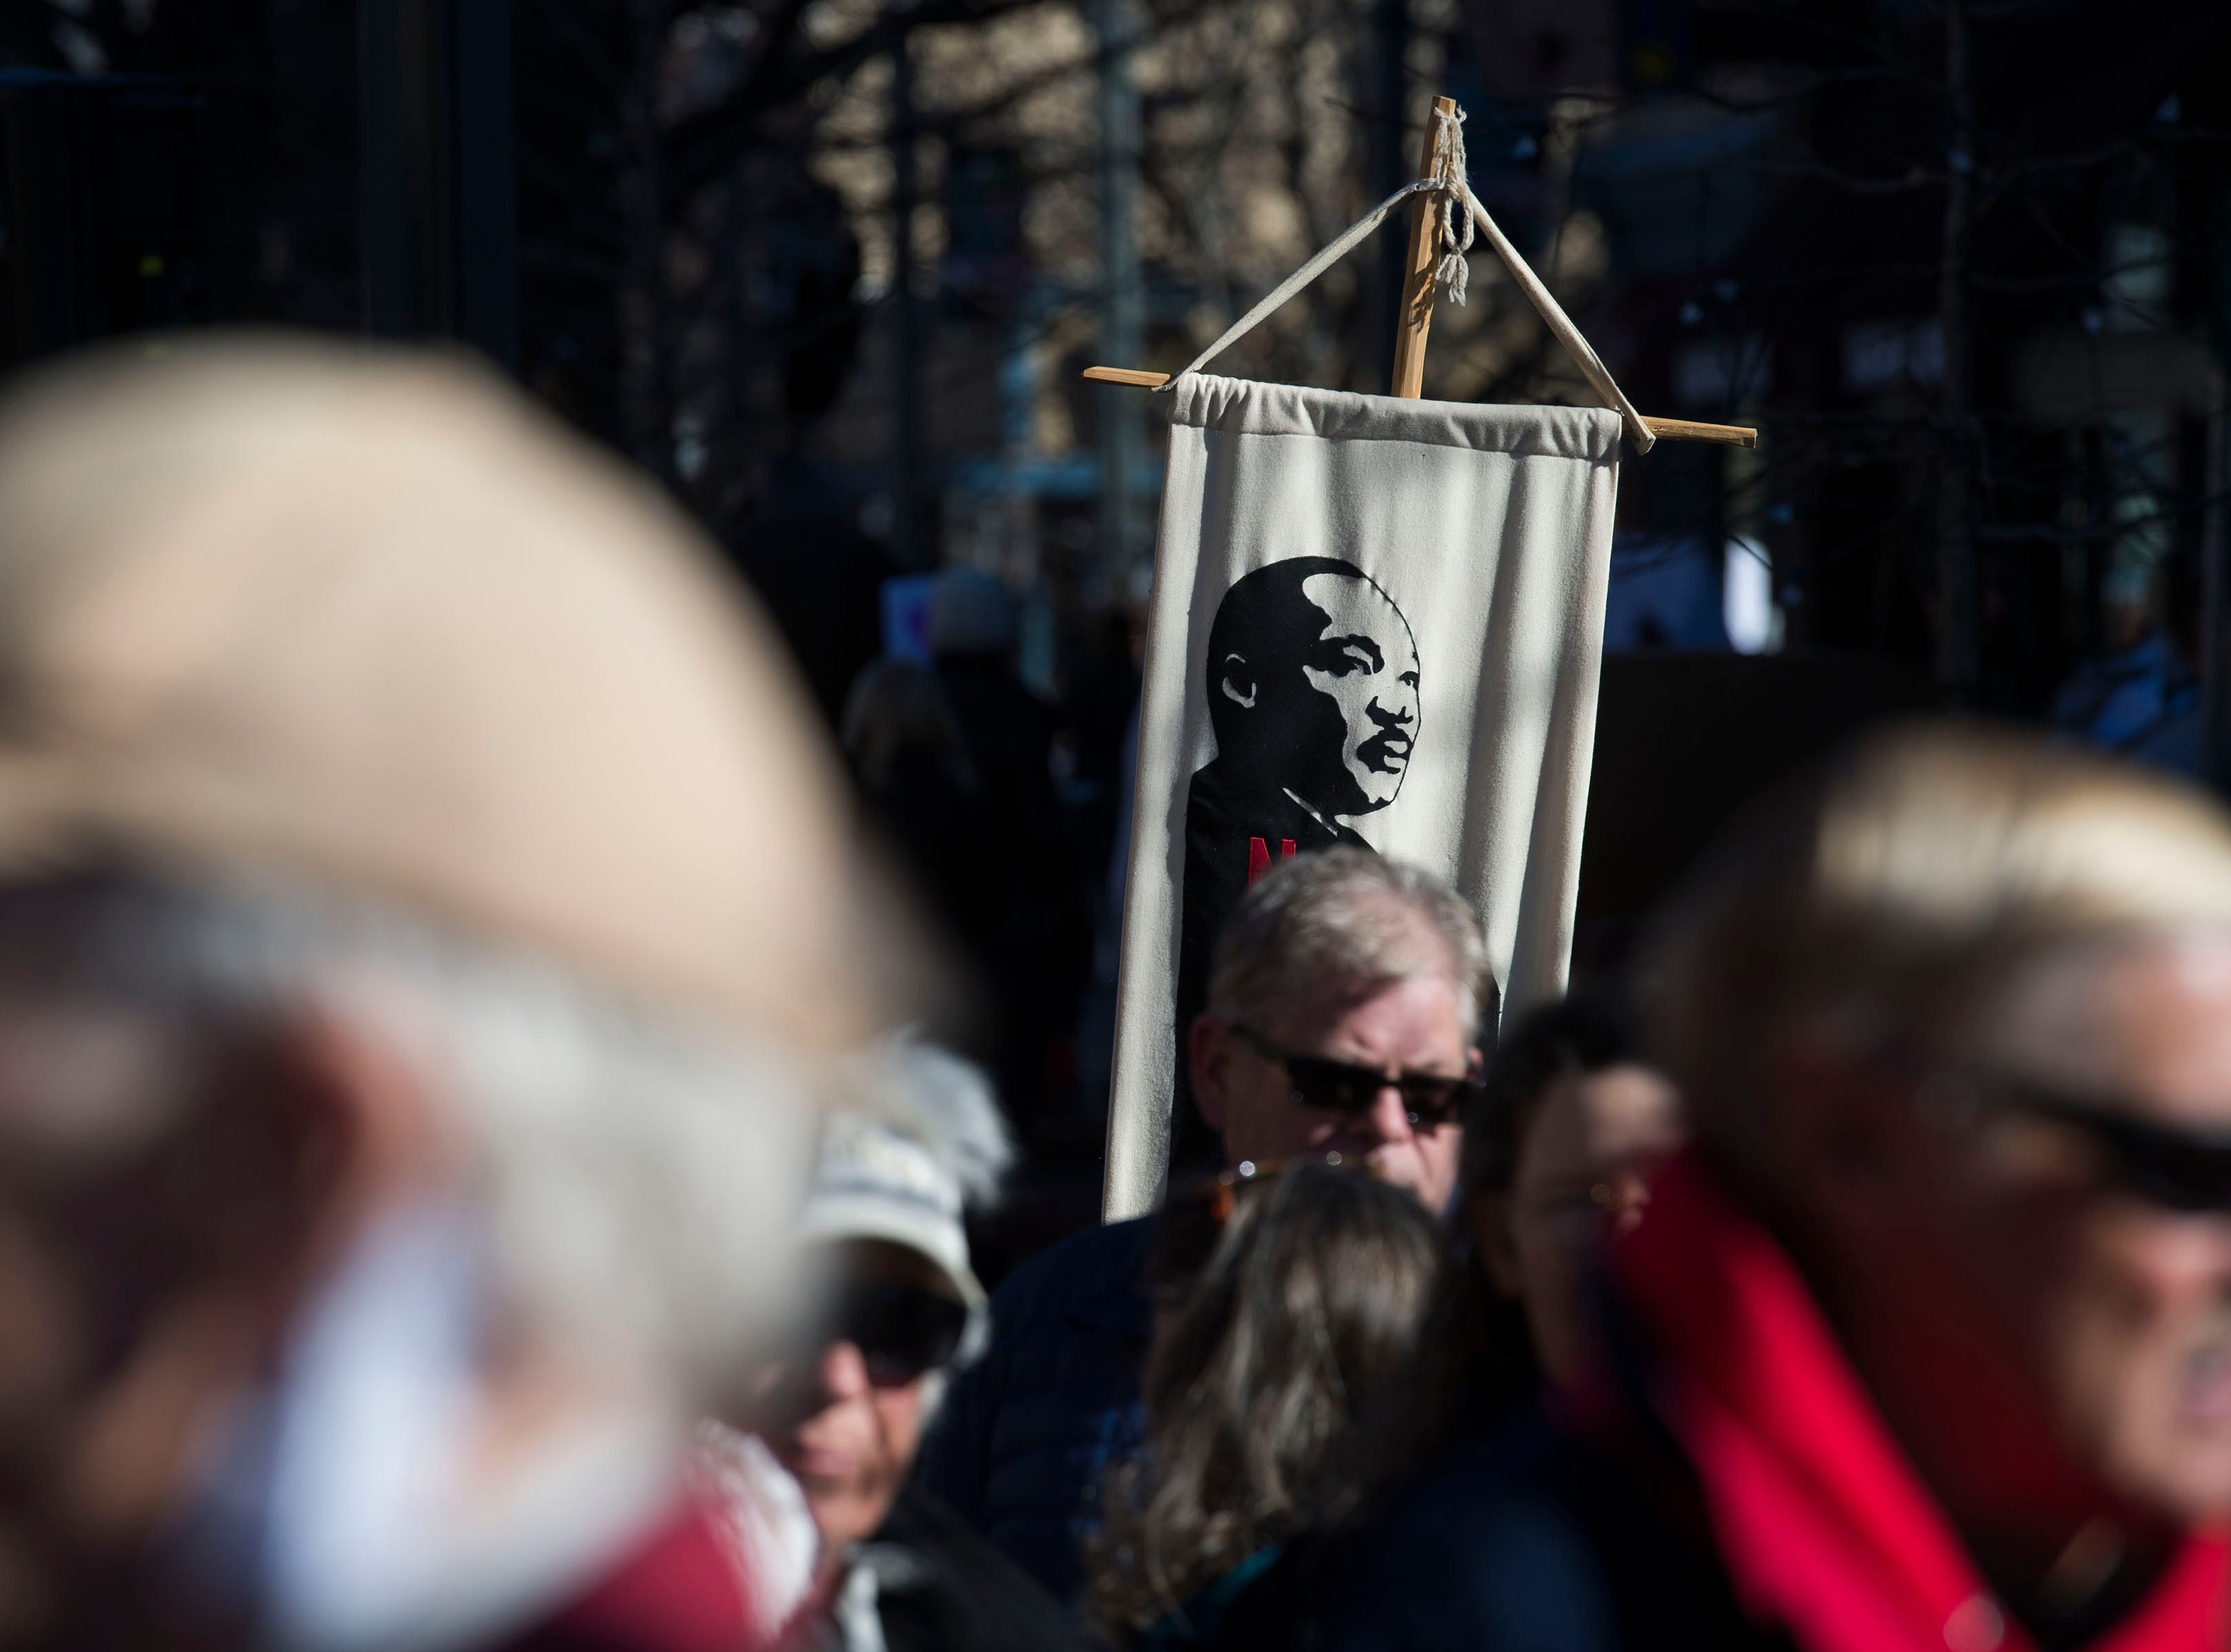 A march participant hold up a sign in Old Town Square before the Dr. Martin Luther King, Jr. March & Celebration on Monday, Jan. 21, 2019, in Fort Collins, Colo.